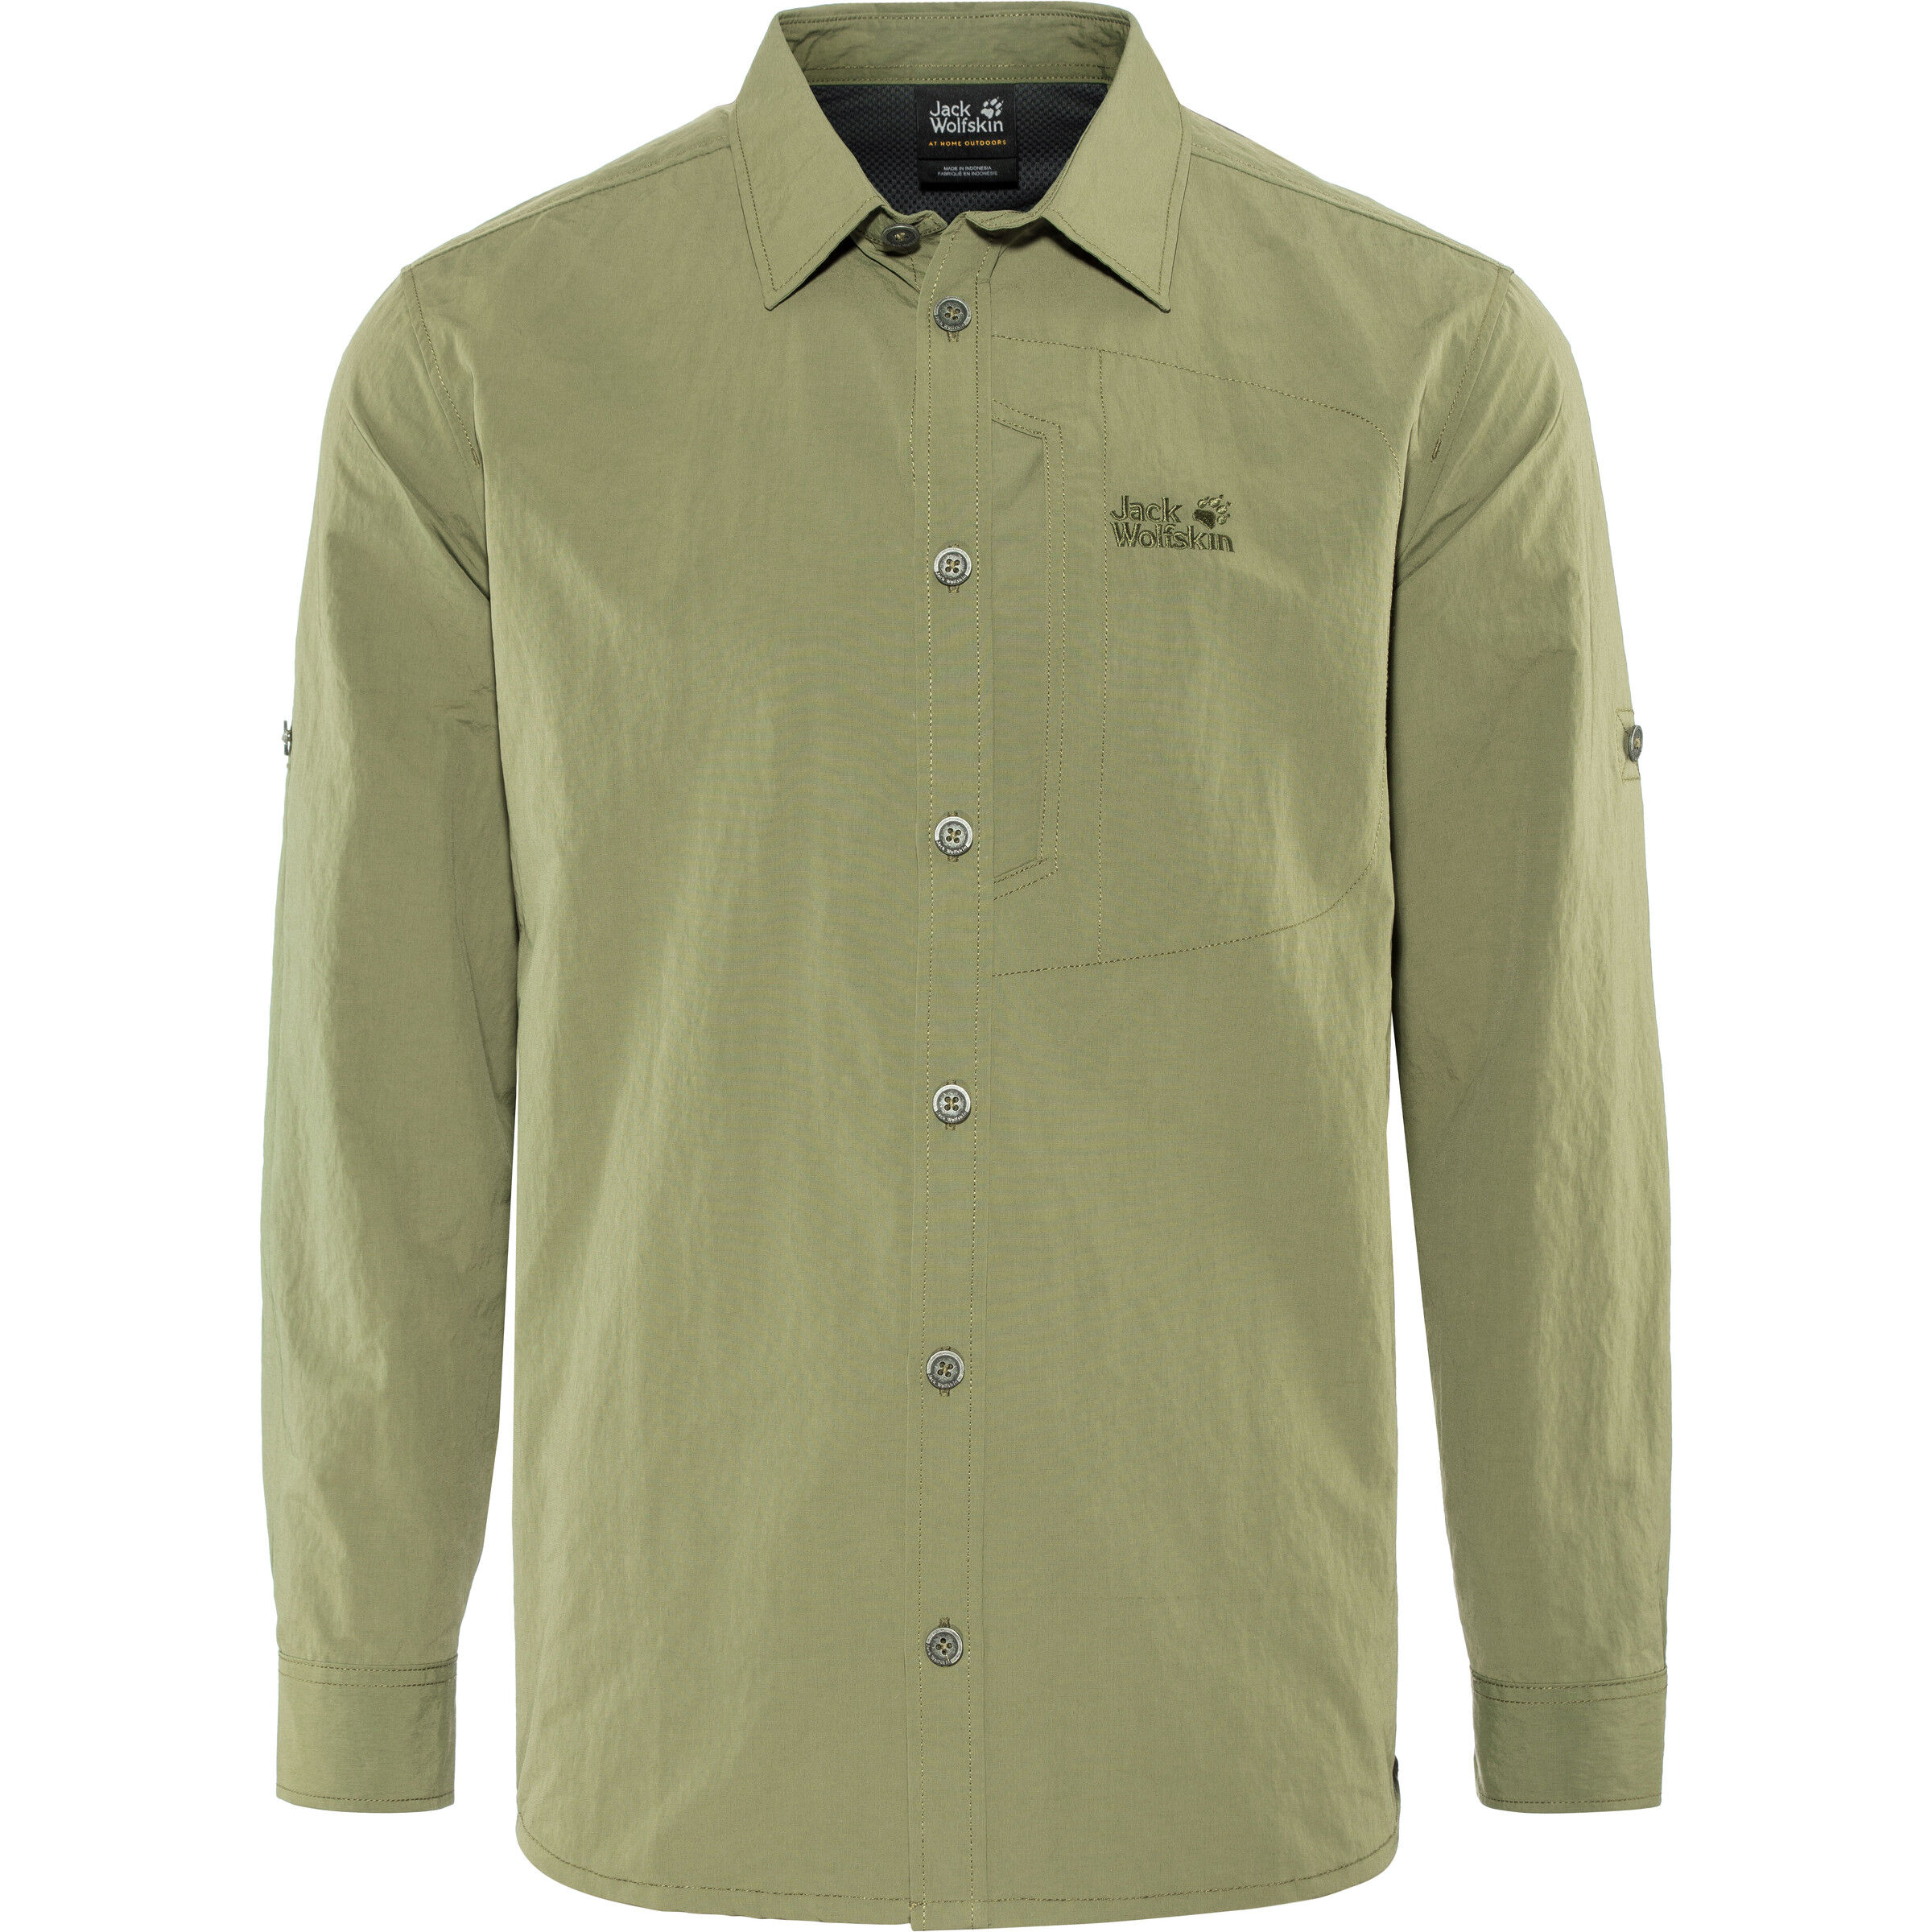 Up Lakeside Woodland Herren Roll Jack Wolfskin Green Shirt PXZiwTkOu